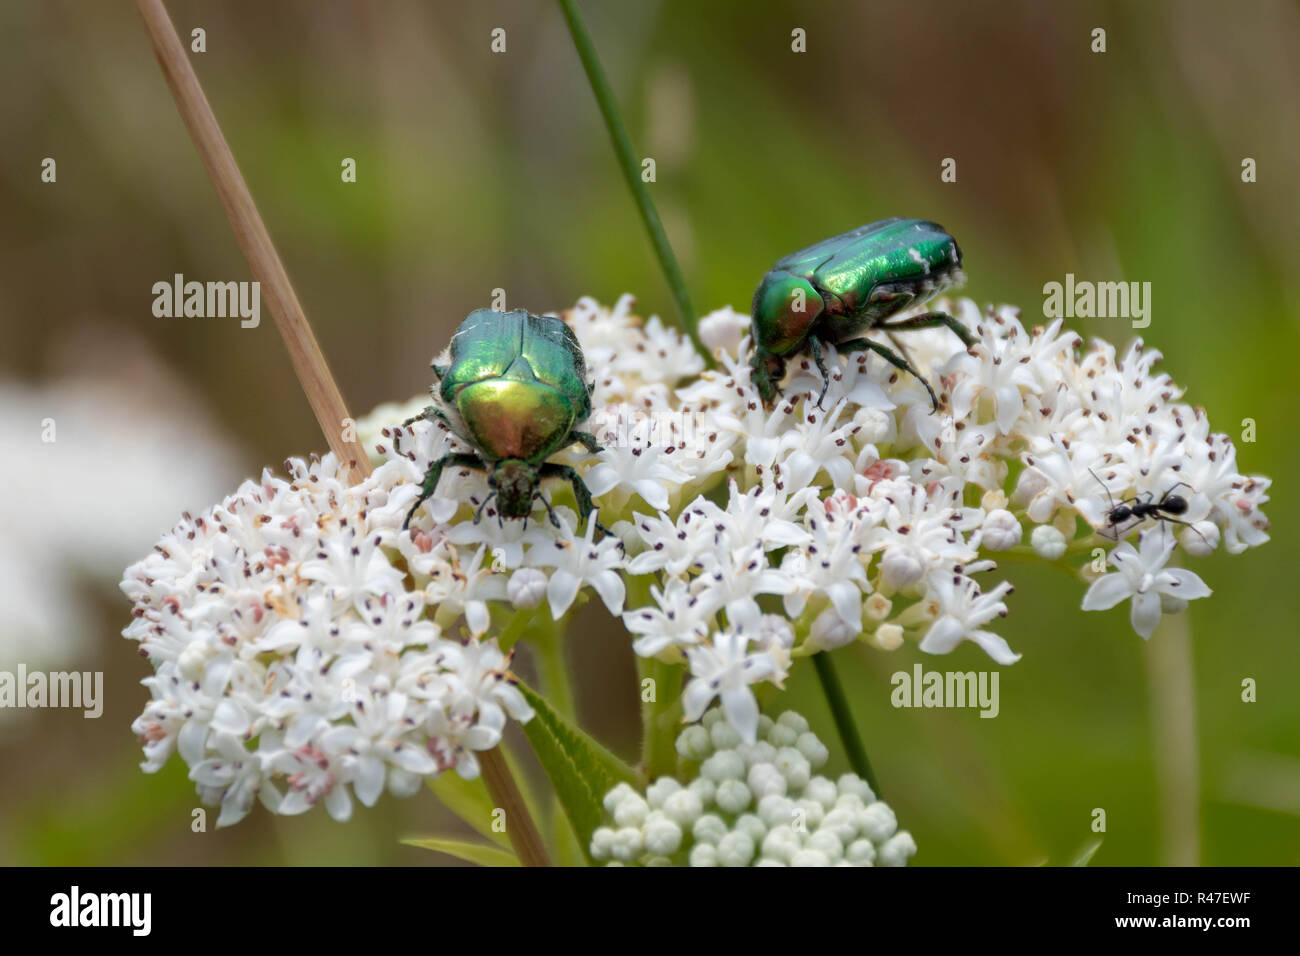 Closeup of two green metallic beetles (European Rose Chafer, Cetonia aurata) crawling on small white flower blossoms Stock Photo